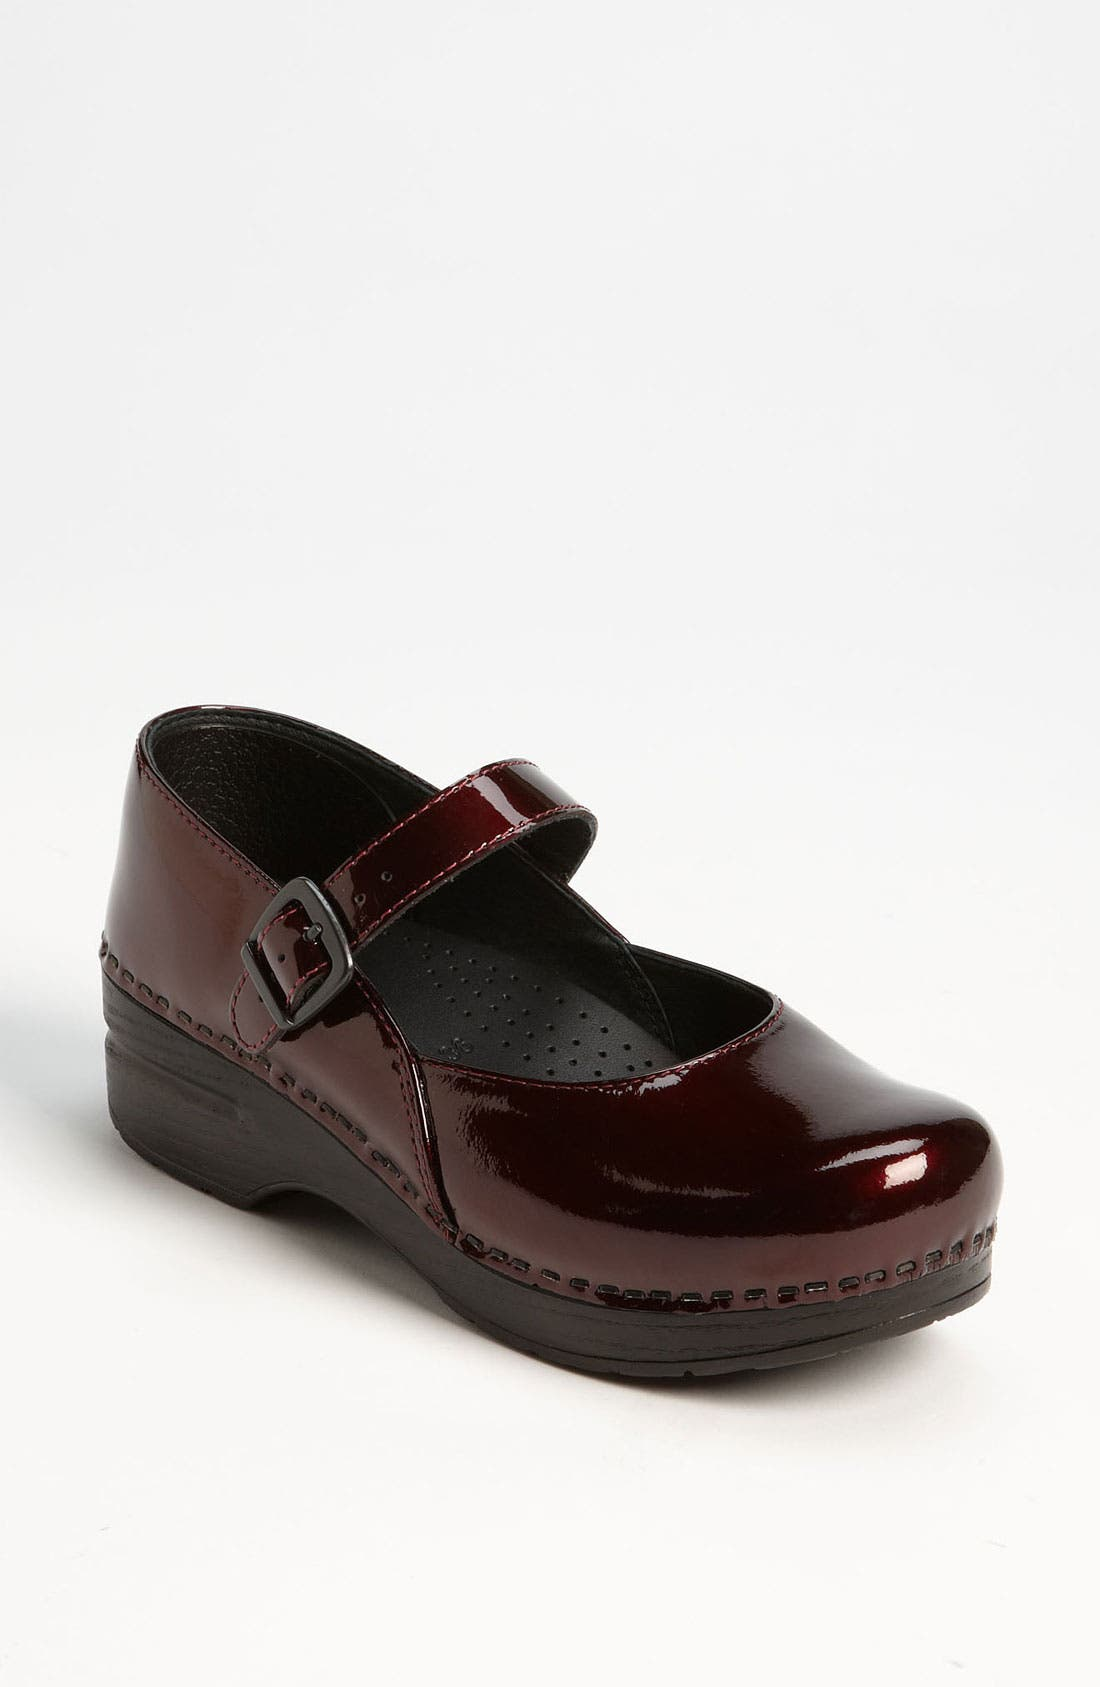 Main Image - Dansko 'Professional Mary Jane' Clog